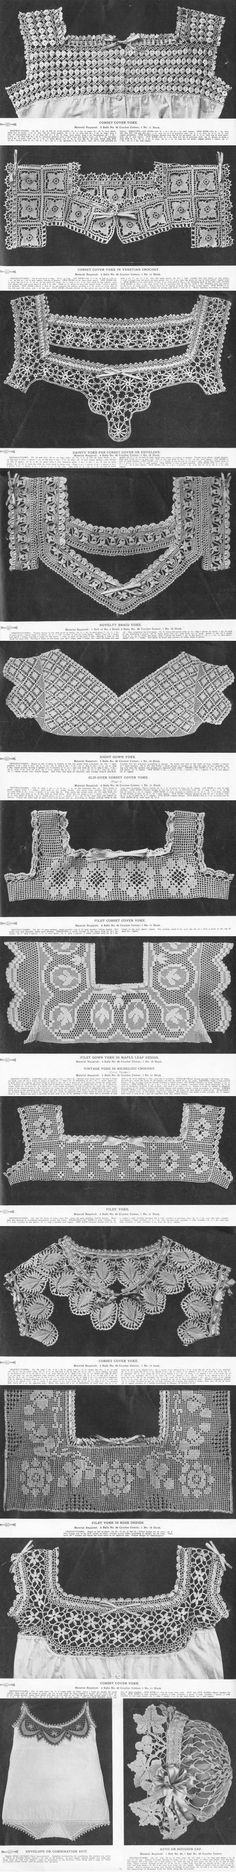 The Princess Yoke Book (1916) contains engravings and instructions on making these beautiful yokes. Read it on the DIY Collaboratorium's Crochet Library page.: